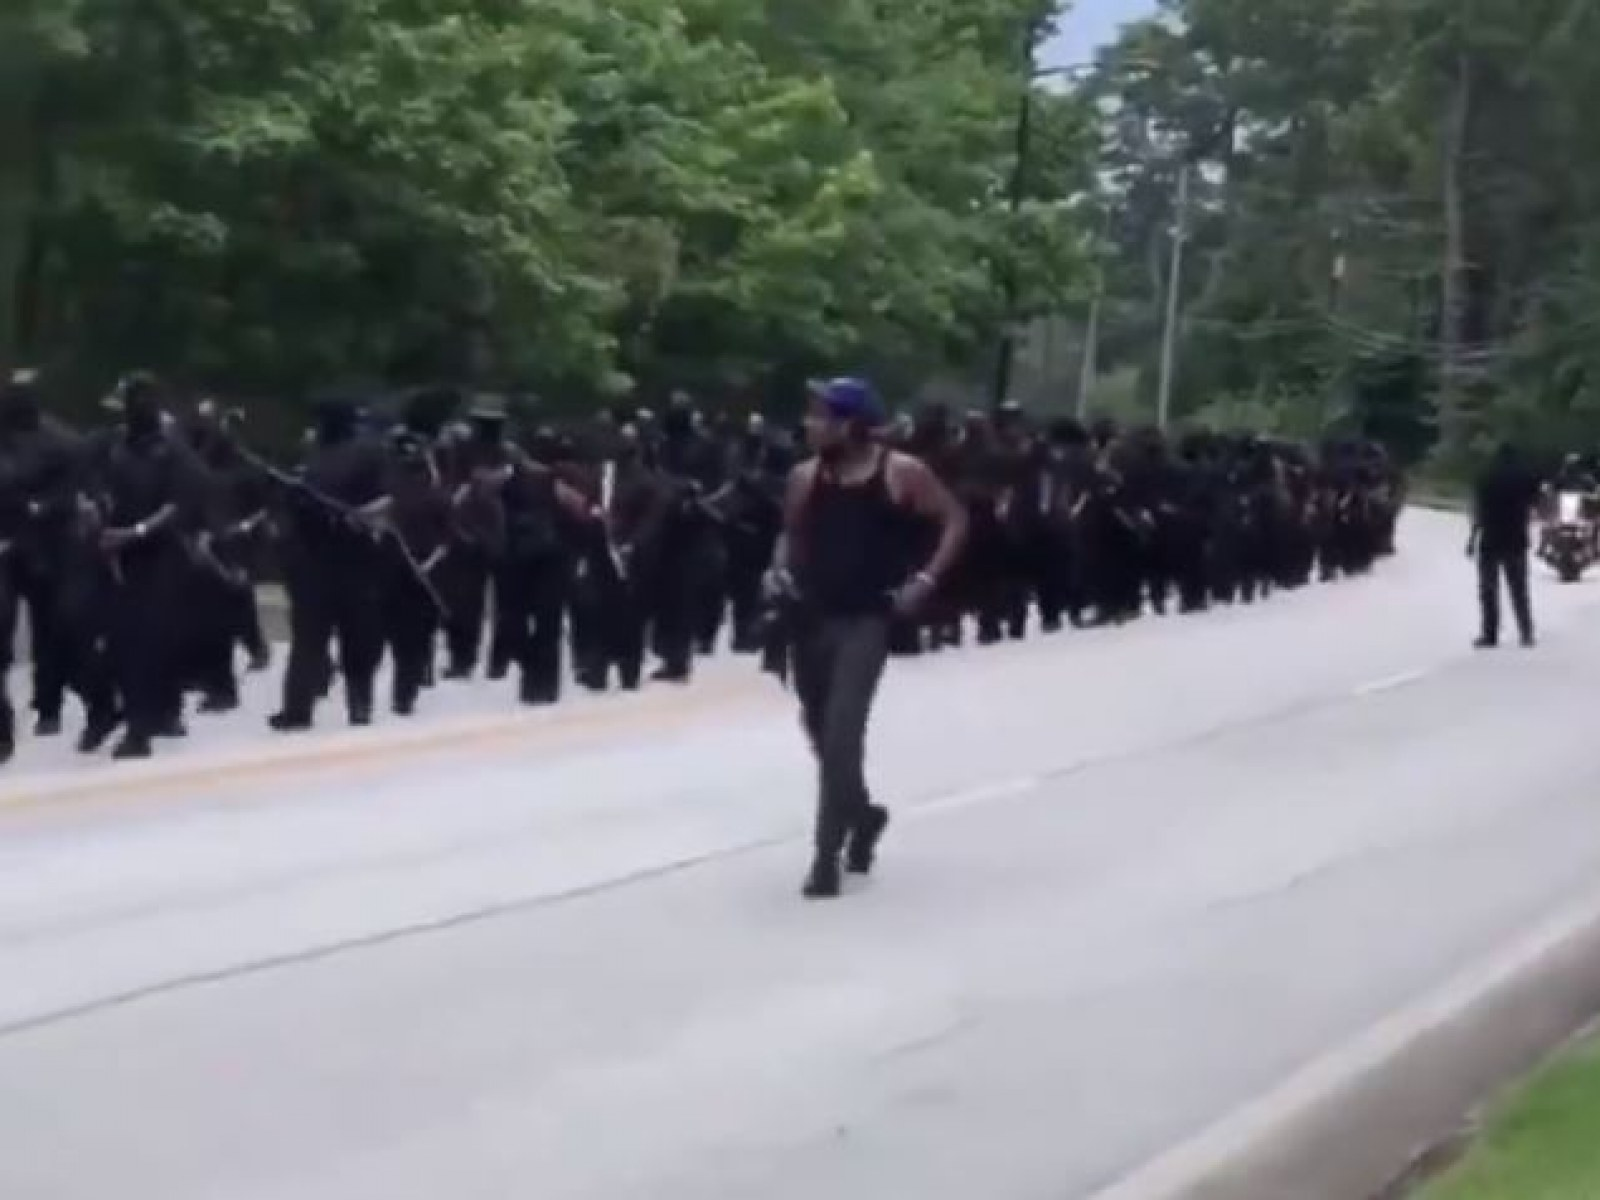 Wow! NFAC Black nationalist armed militia challenges far-right